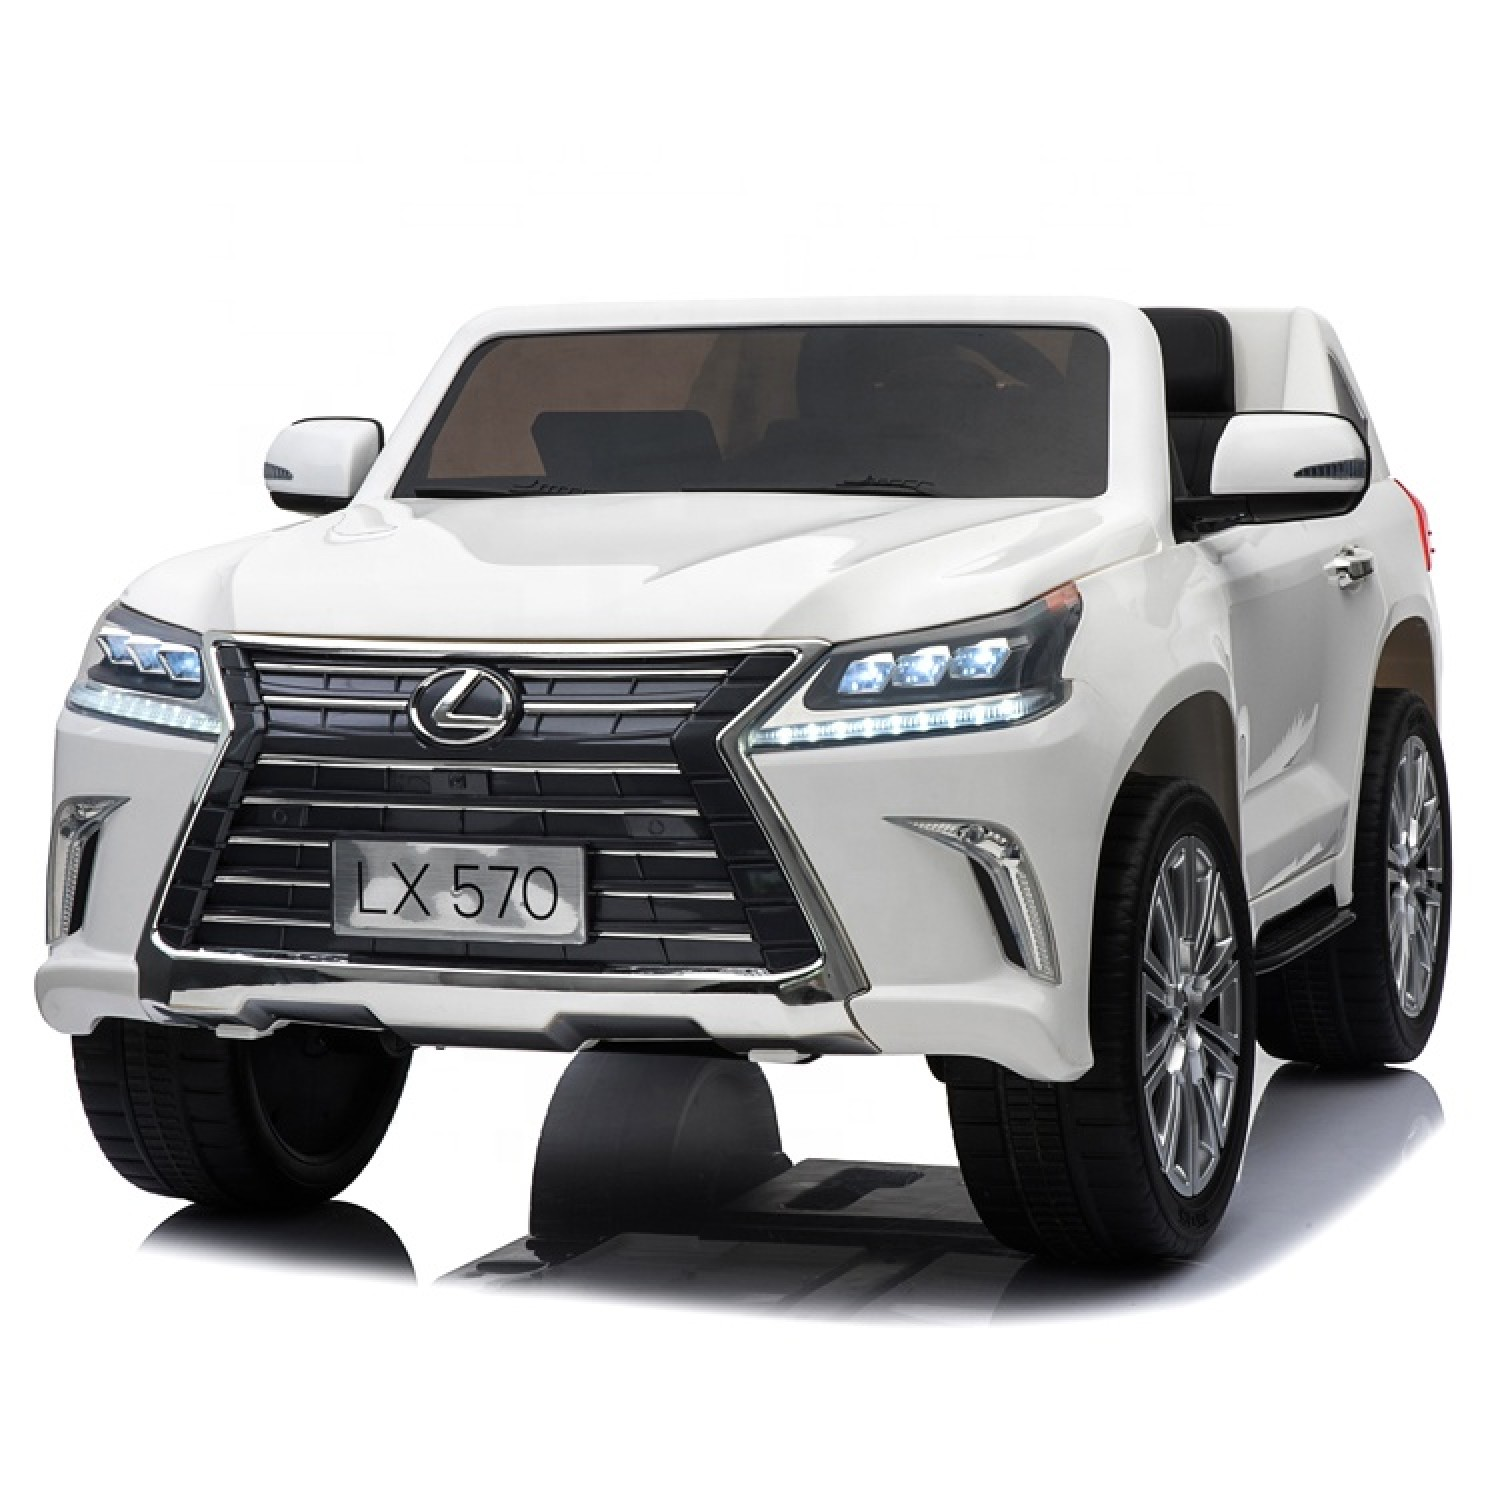 Lexus License Lx570 Electric Ride On Cars For Kids 24v